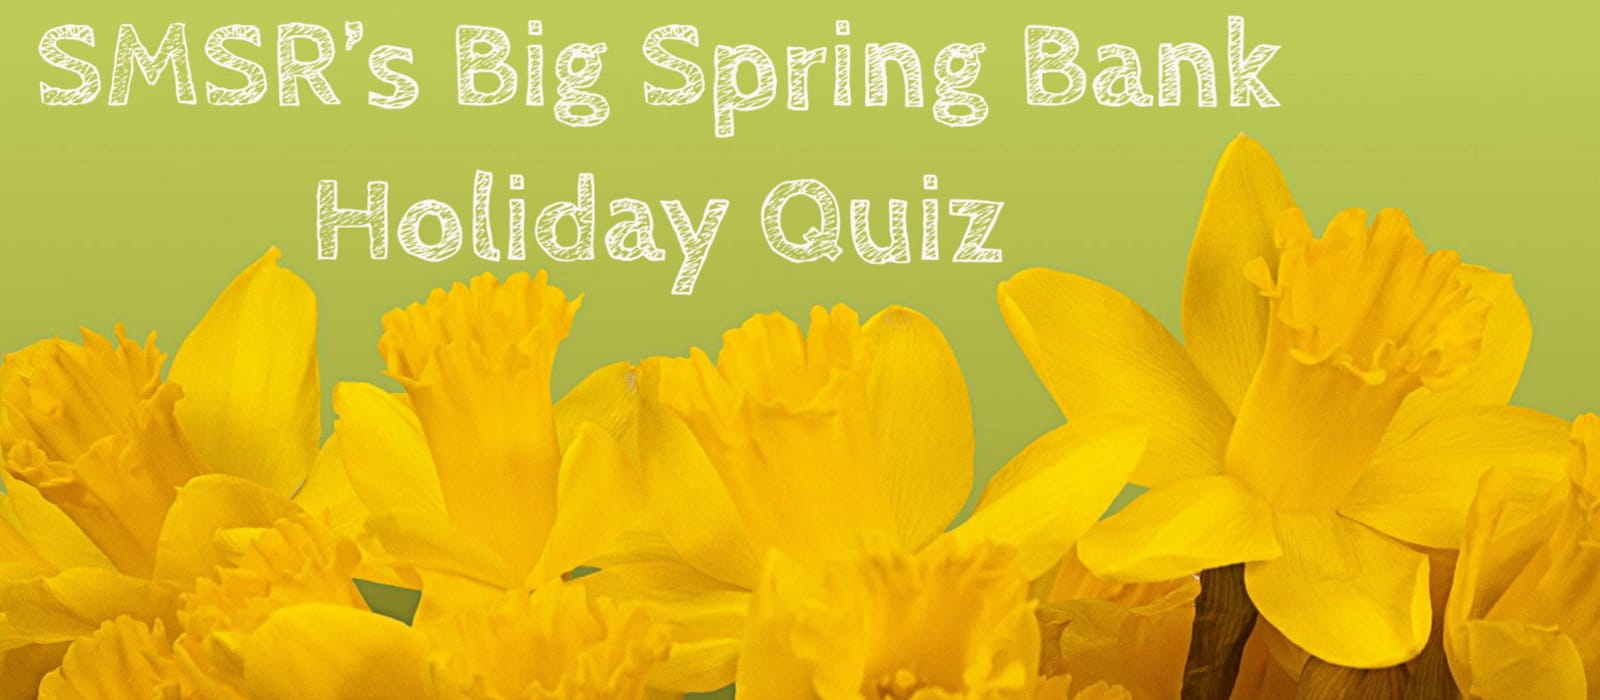 SMSR's Big Spring Bank Holiday Quiz!